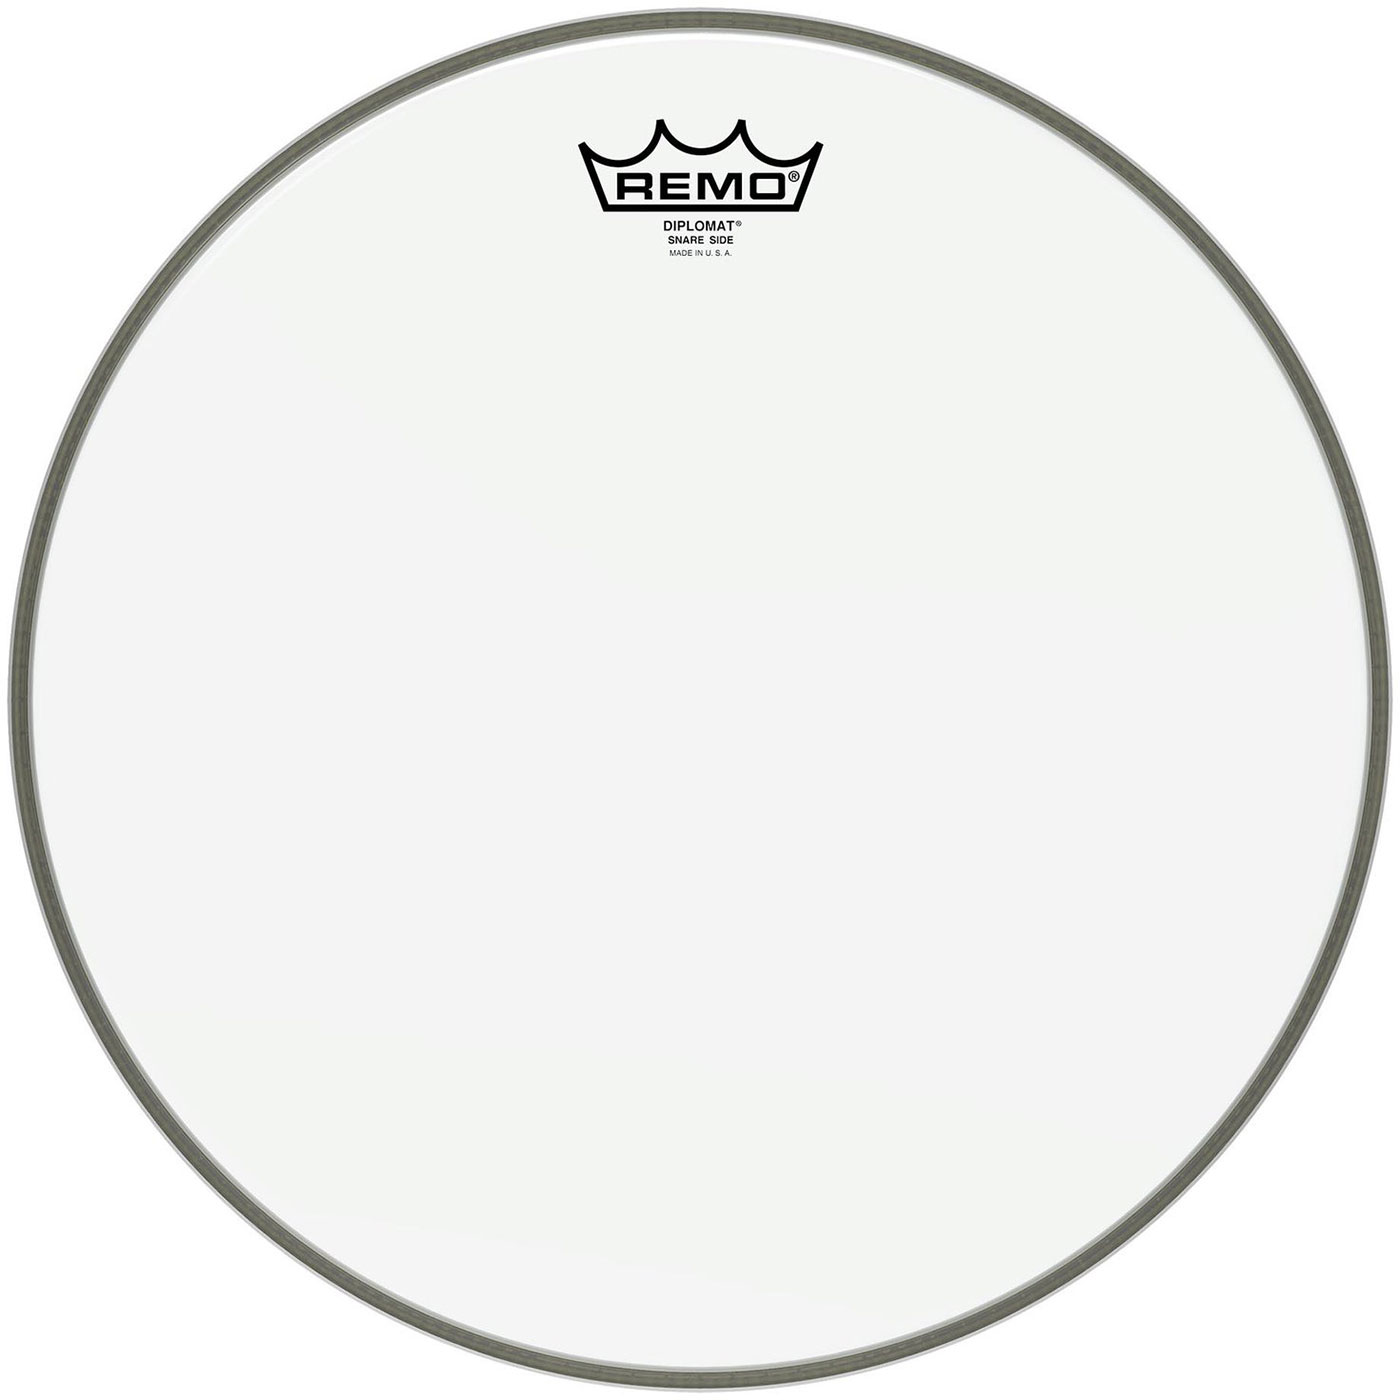 "Remo 15"" Diplomat Hazy Snare Side (Bottom) Drum Head"